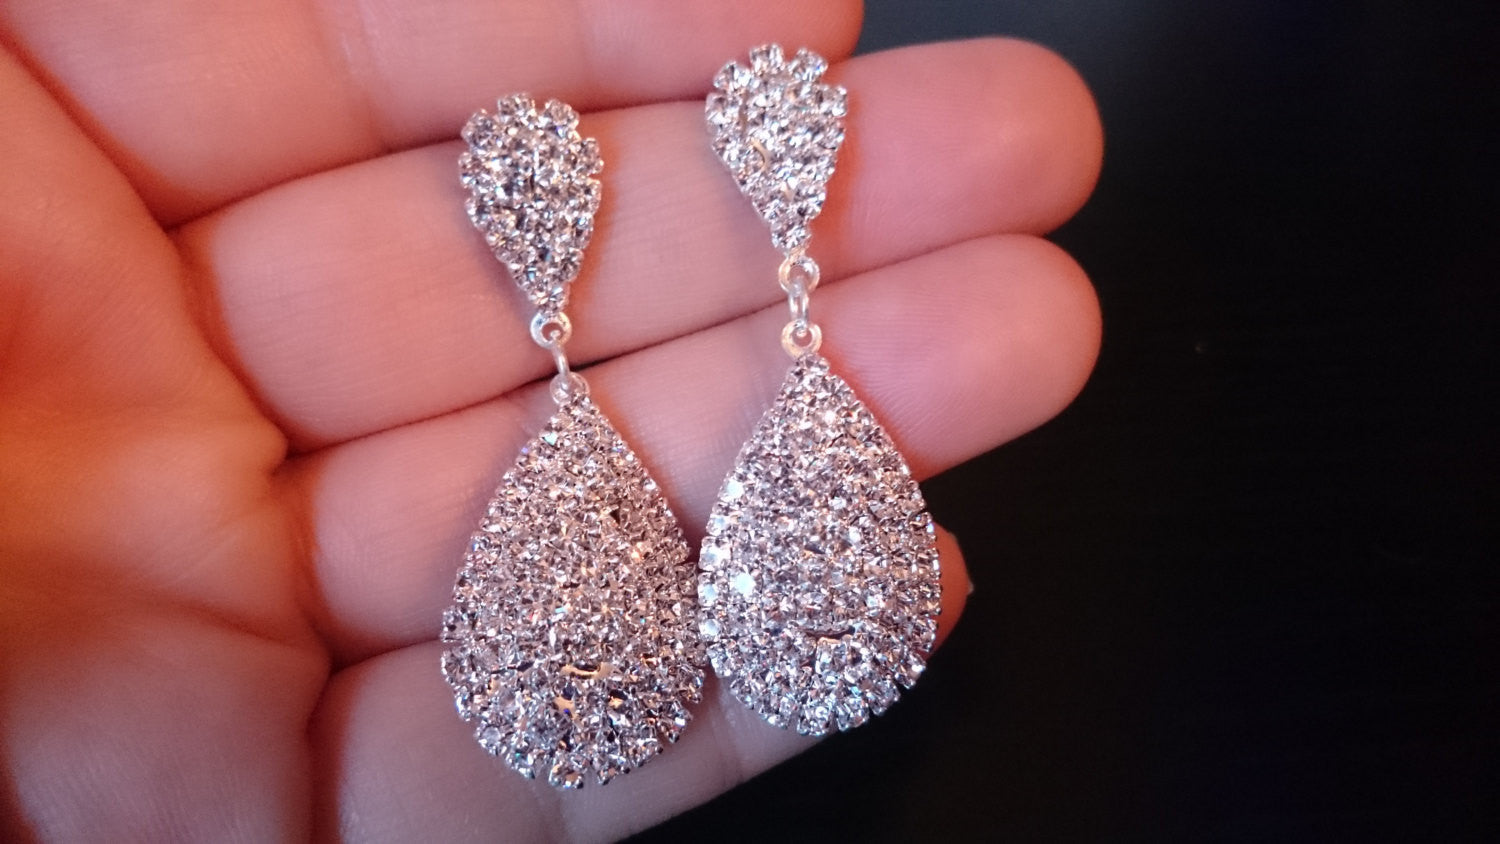 Bridal Earrings, Crystal Earrings, CZ Encrusted, Pave Teardrop CZ Crystal Drop Earrings, Wedding Earrings, Bridesmaid, Pear Shape